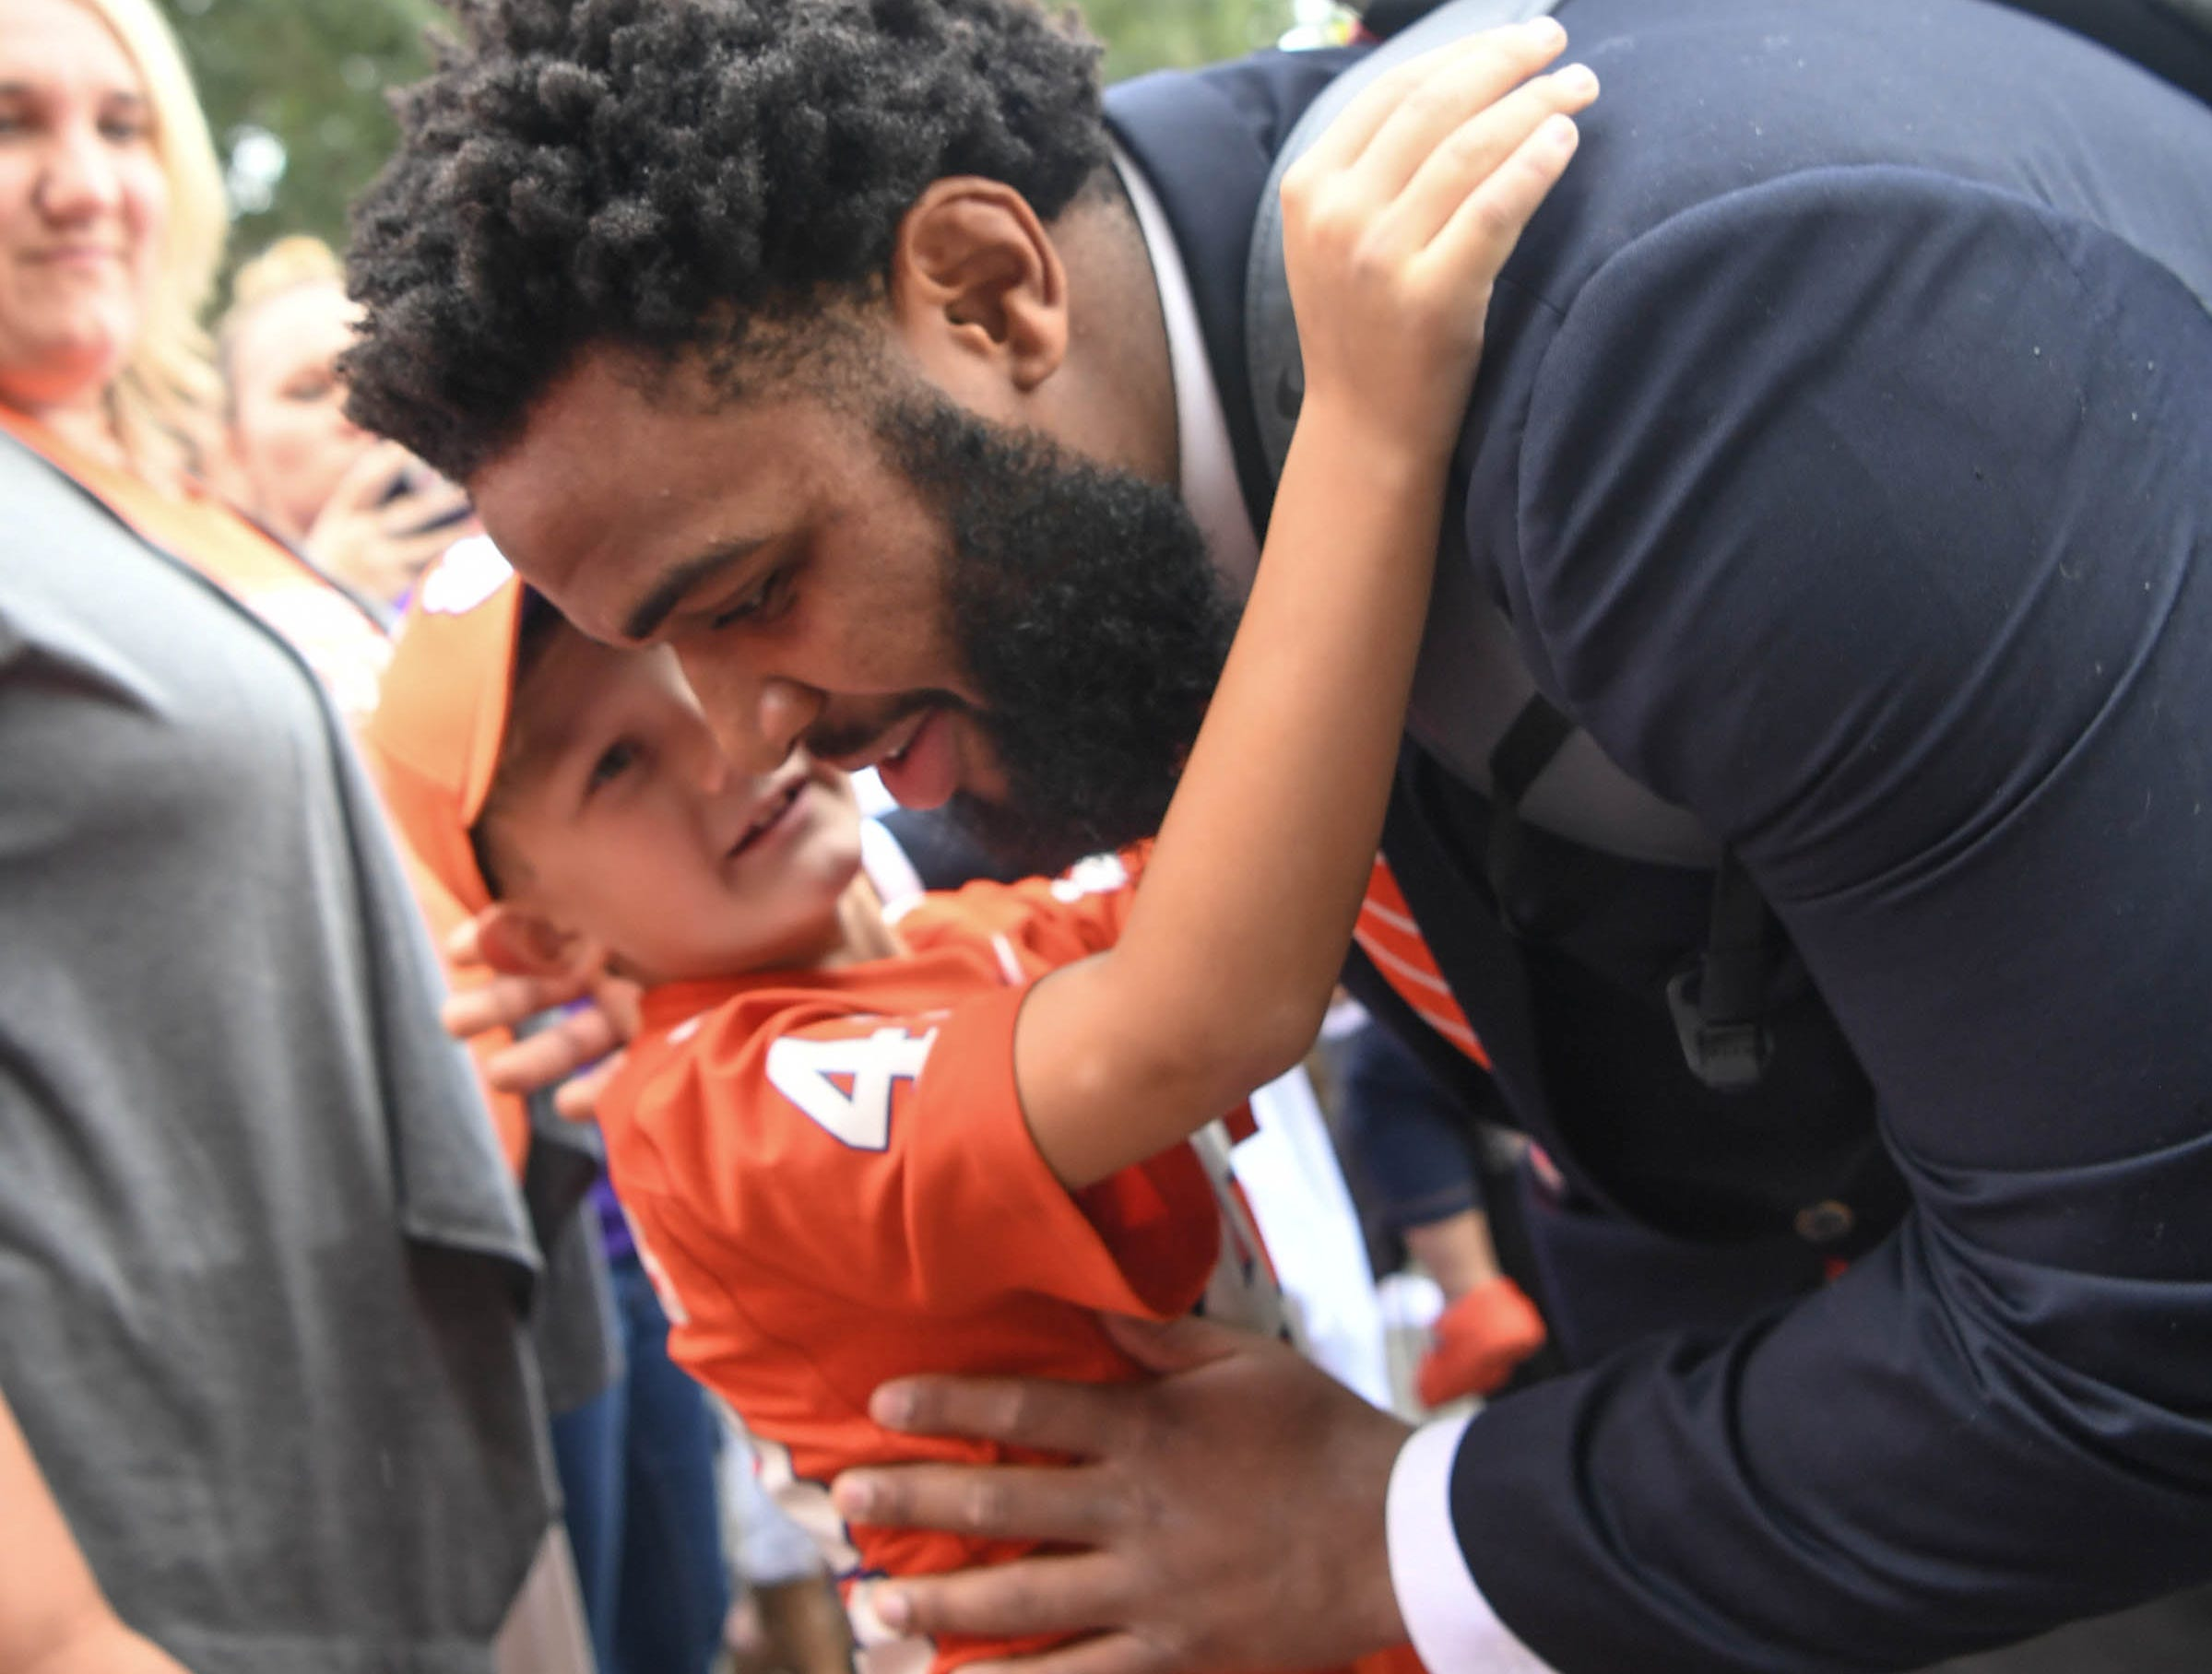 Clemson defensive lineman Christian Wilkins stops to hug a young fan during Tiger Walk before the game in Memorial Stadium on Saturday, October 20, 2018.